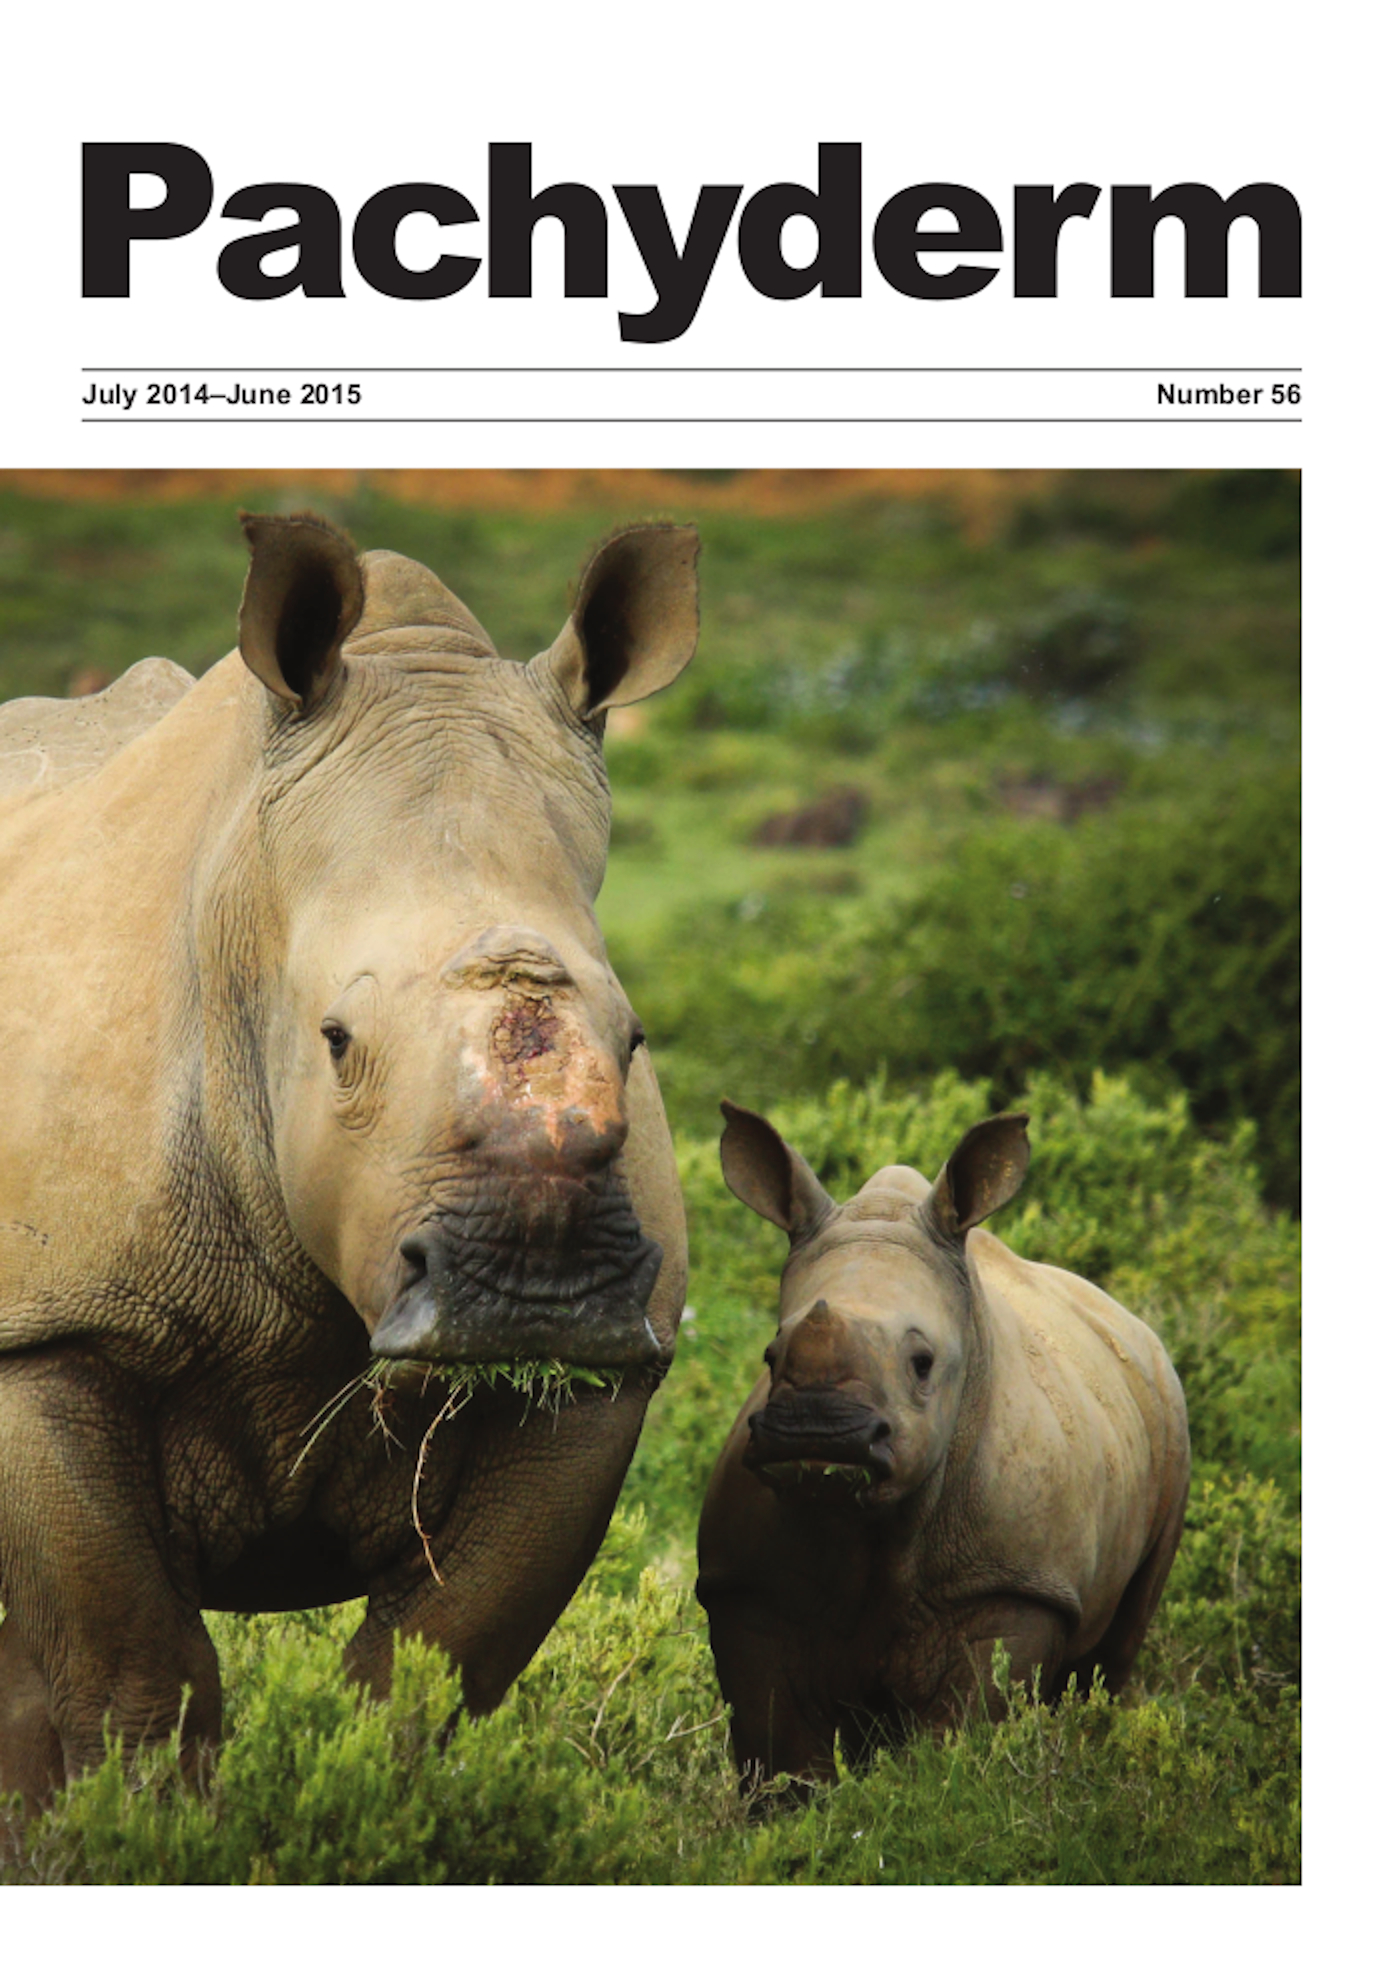 Cover caption: Thandi and her six month old calf ('Thembi' that means hope in isiXhosa) in Shamwari Game Reserve, South Africa. Thandi survived a brutal attack by poachers, defacing her and destroying her horn growth plate. Only through skilful veterinary work and innovative skin grafts did she survive. © Daniel Haesslich/Kariega Reserve